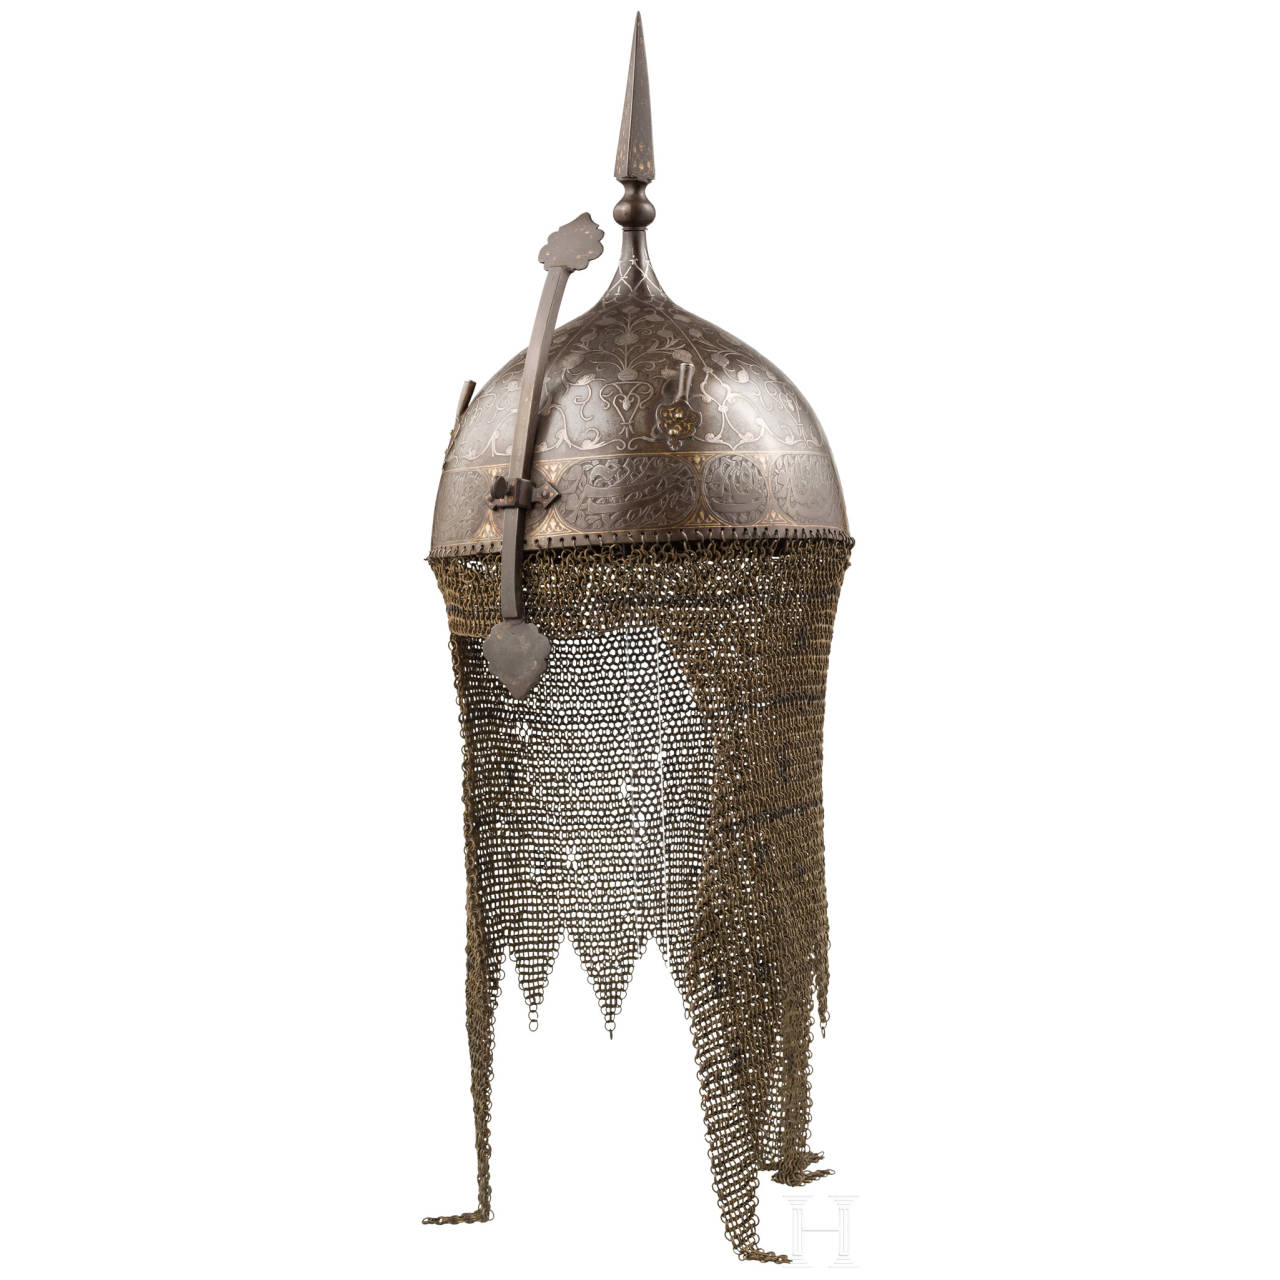 A Persian silver-inlaid helmet, 19th century